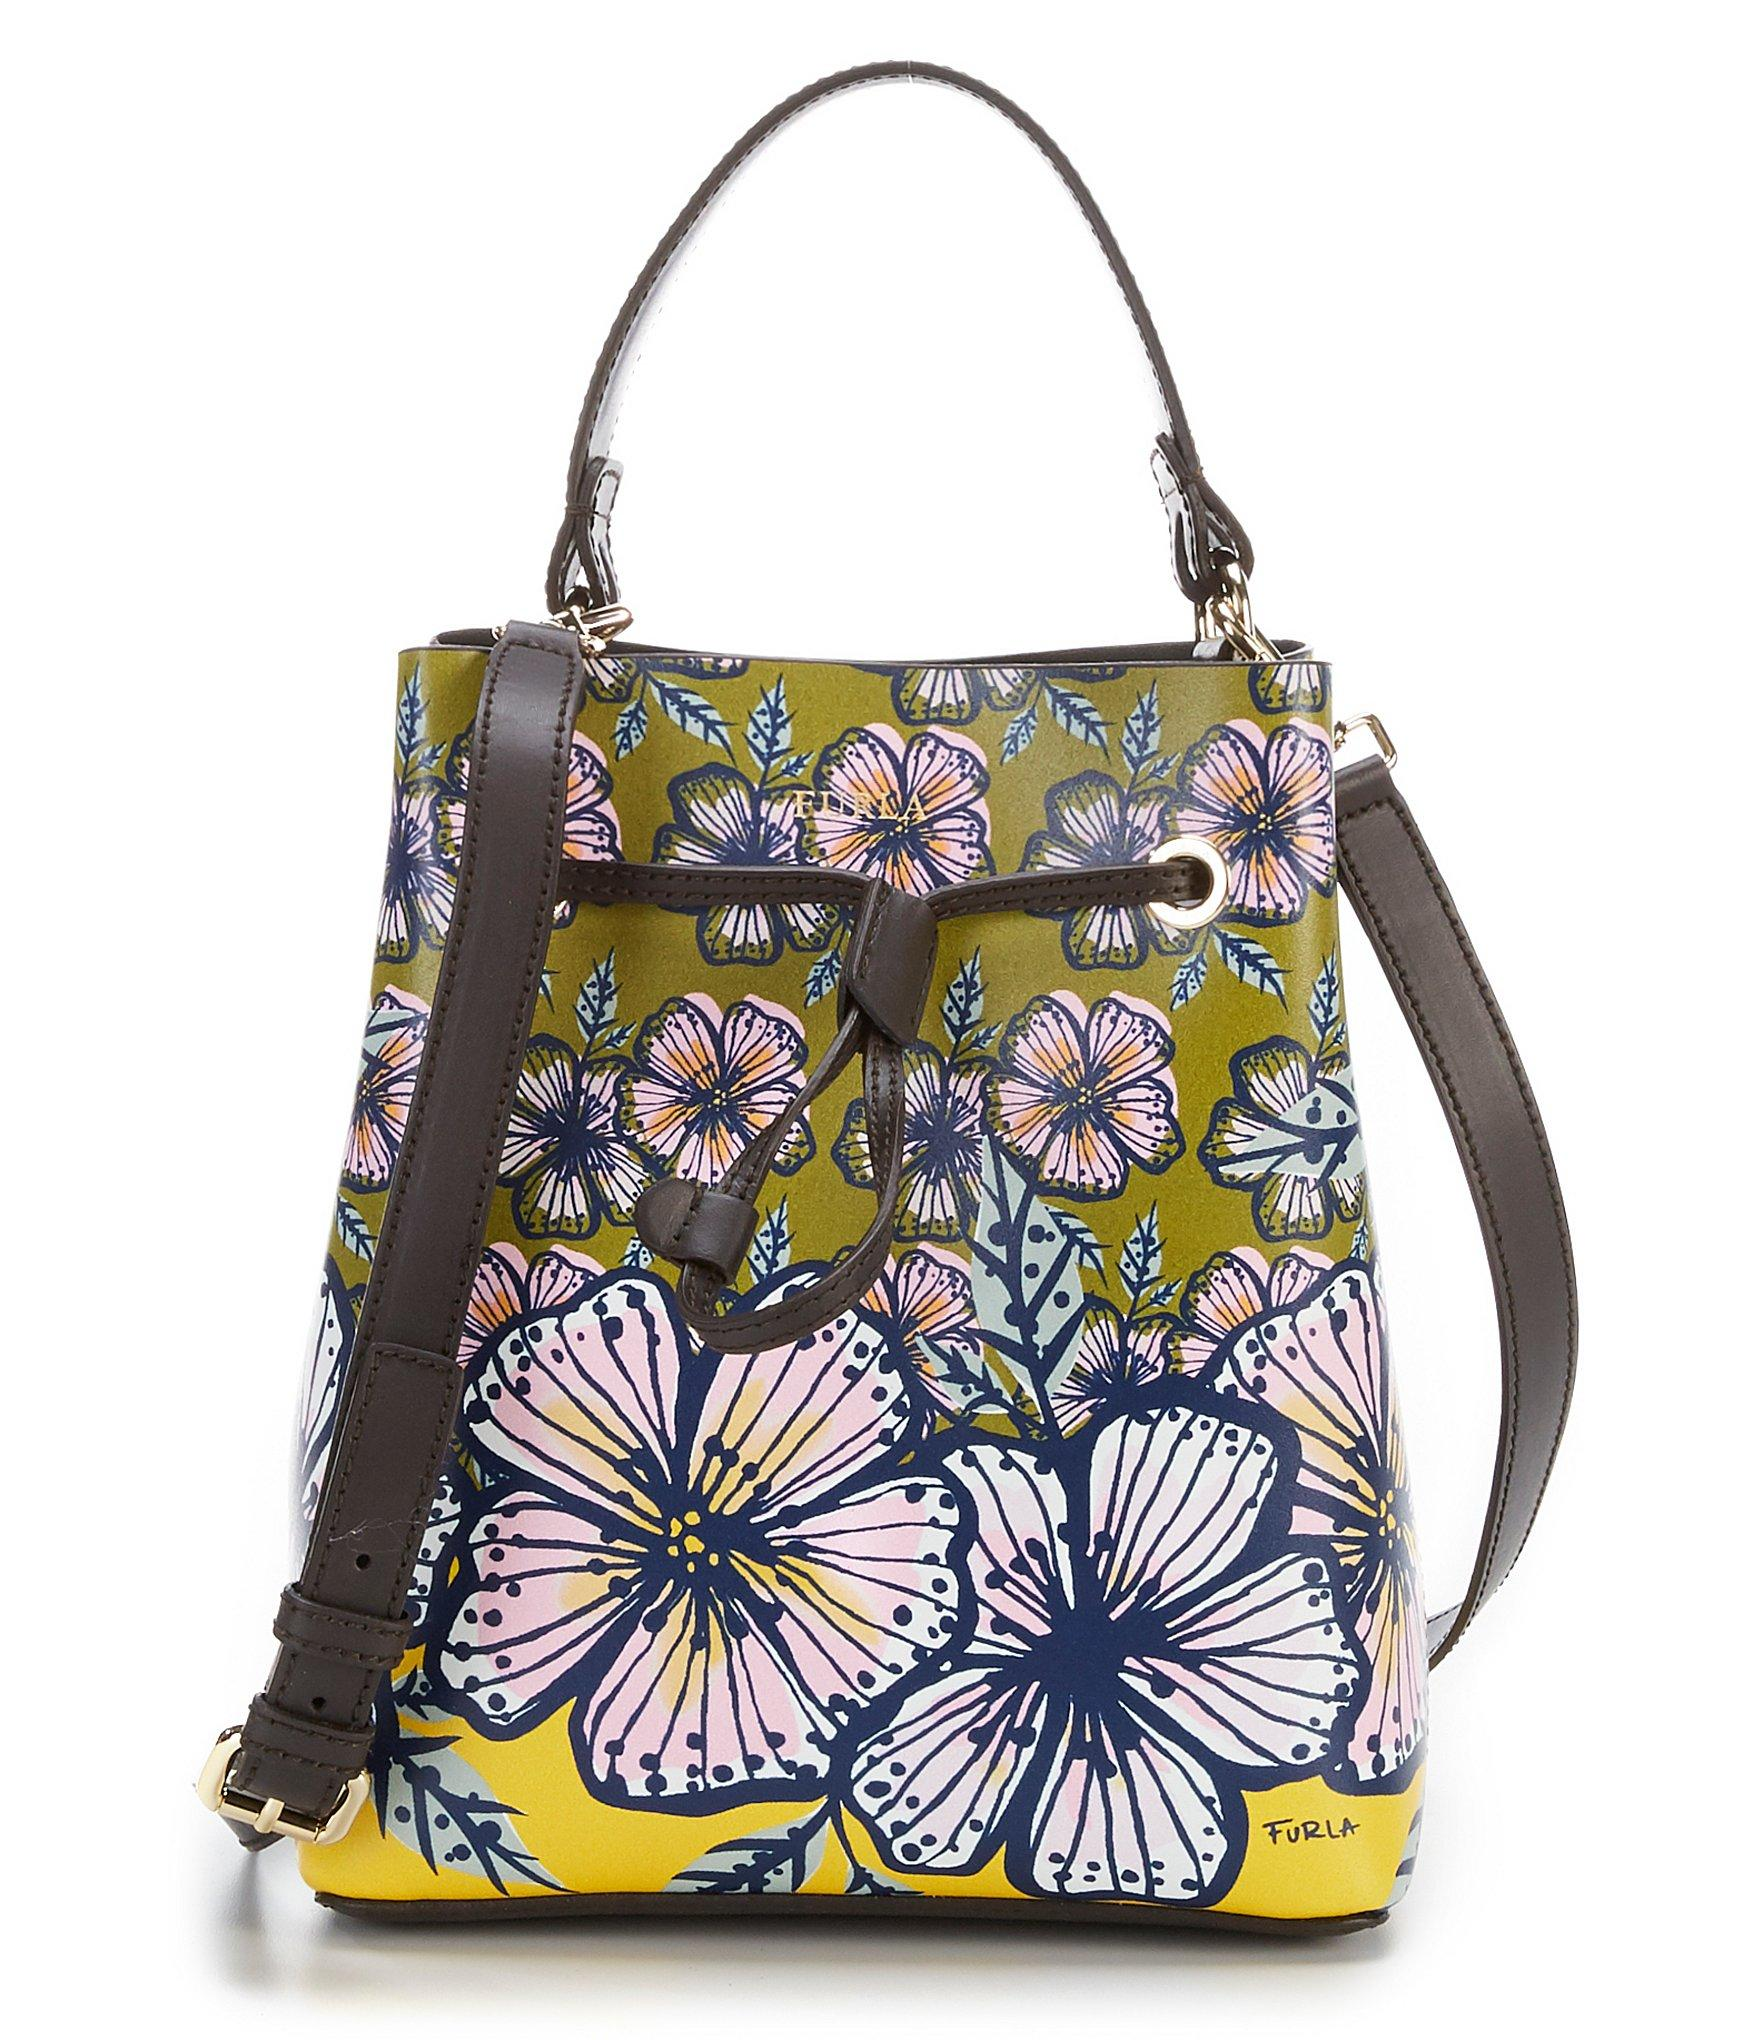 Lyst Furla Stacy Floral Small Drawstring Bucket Bag